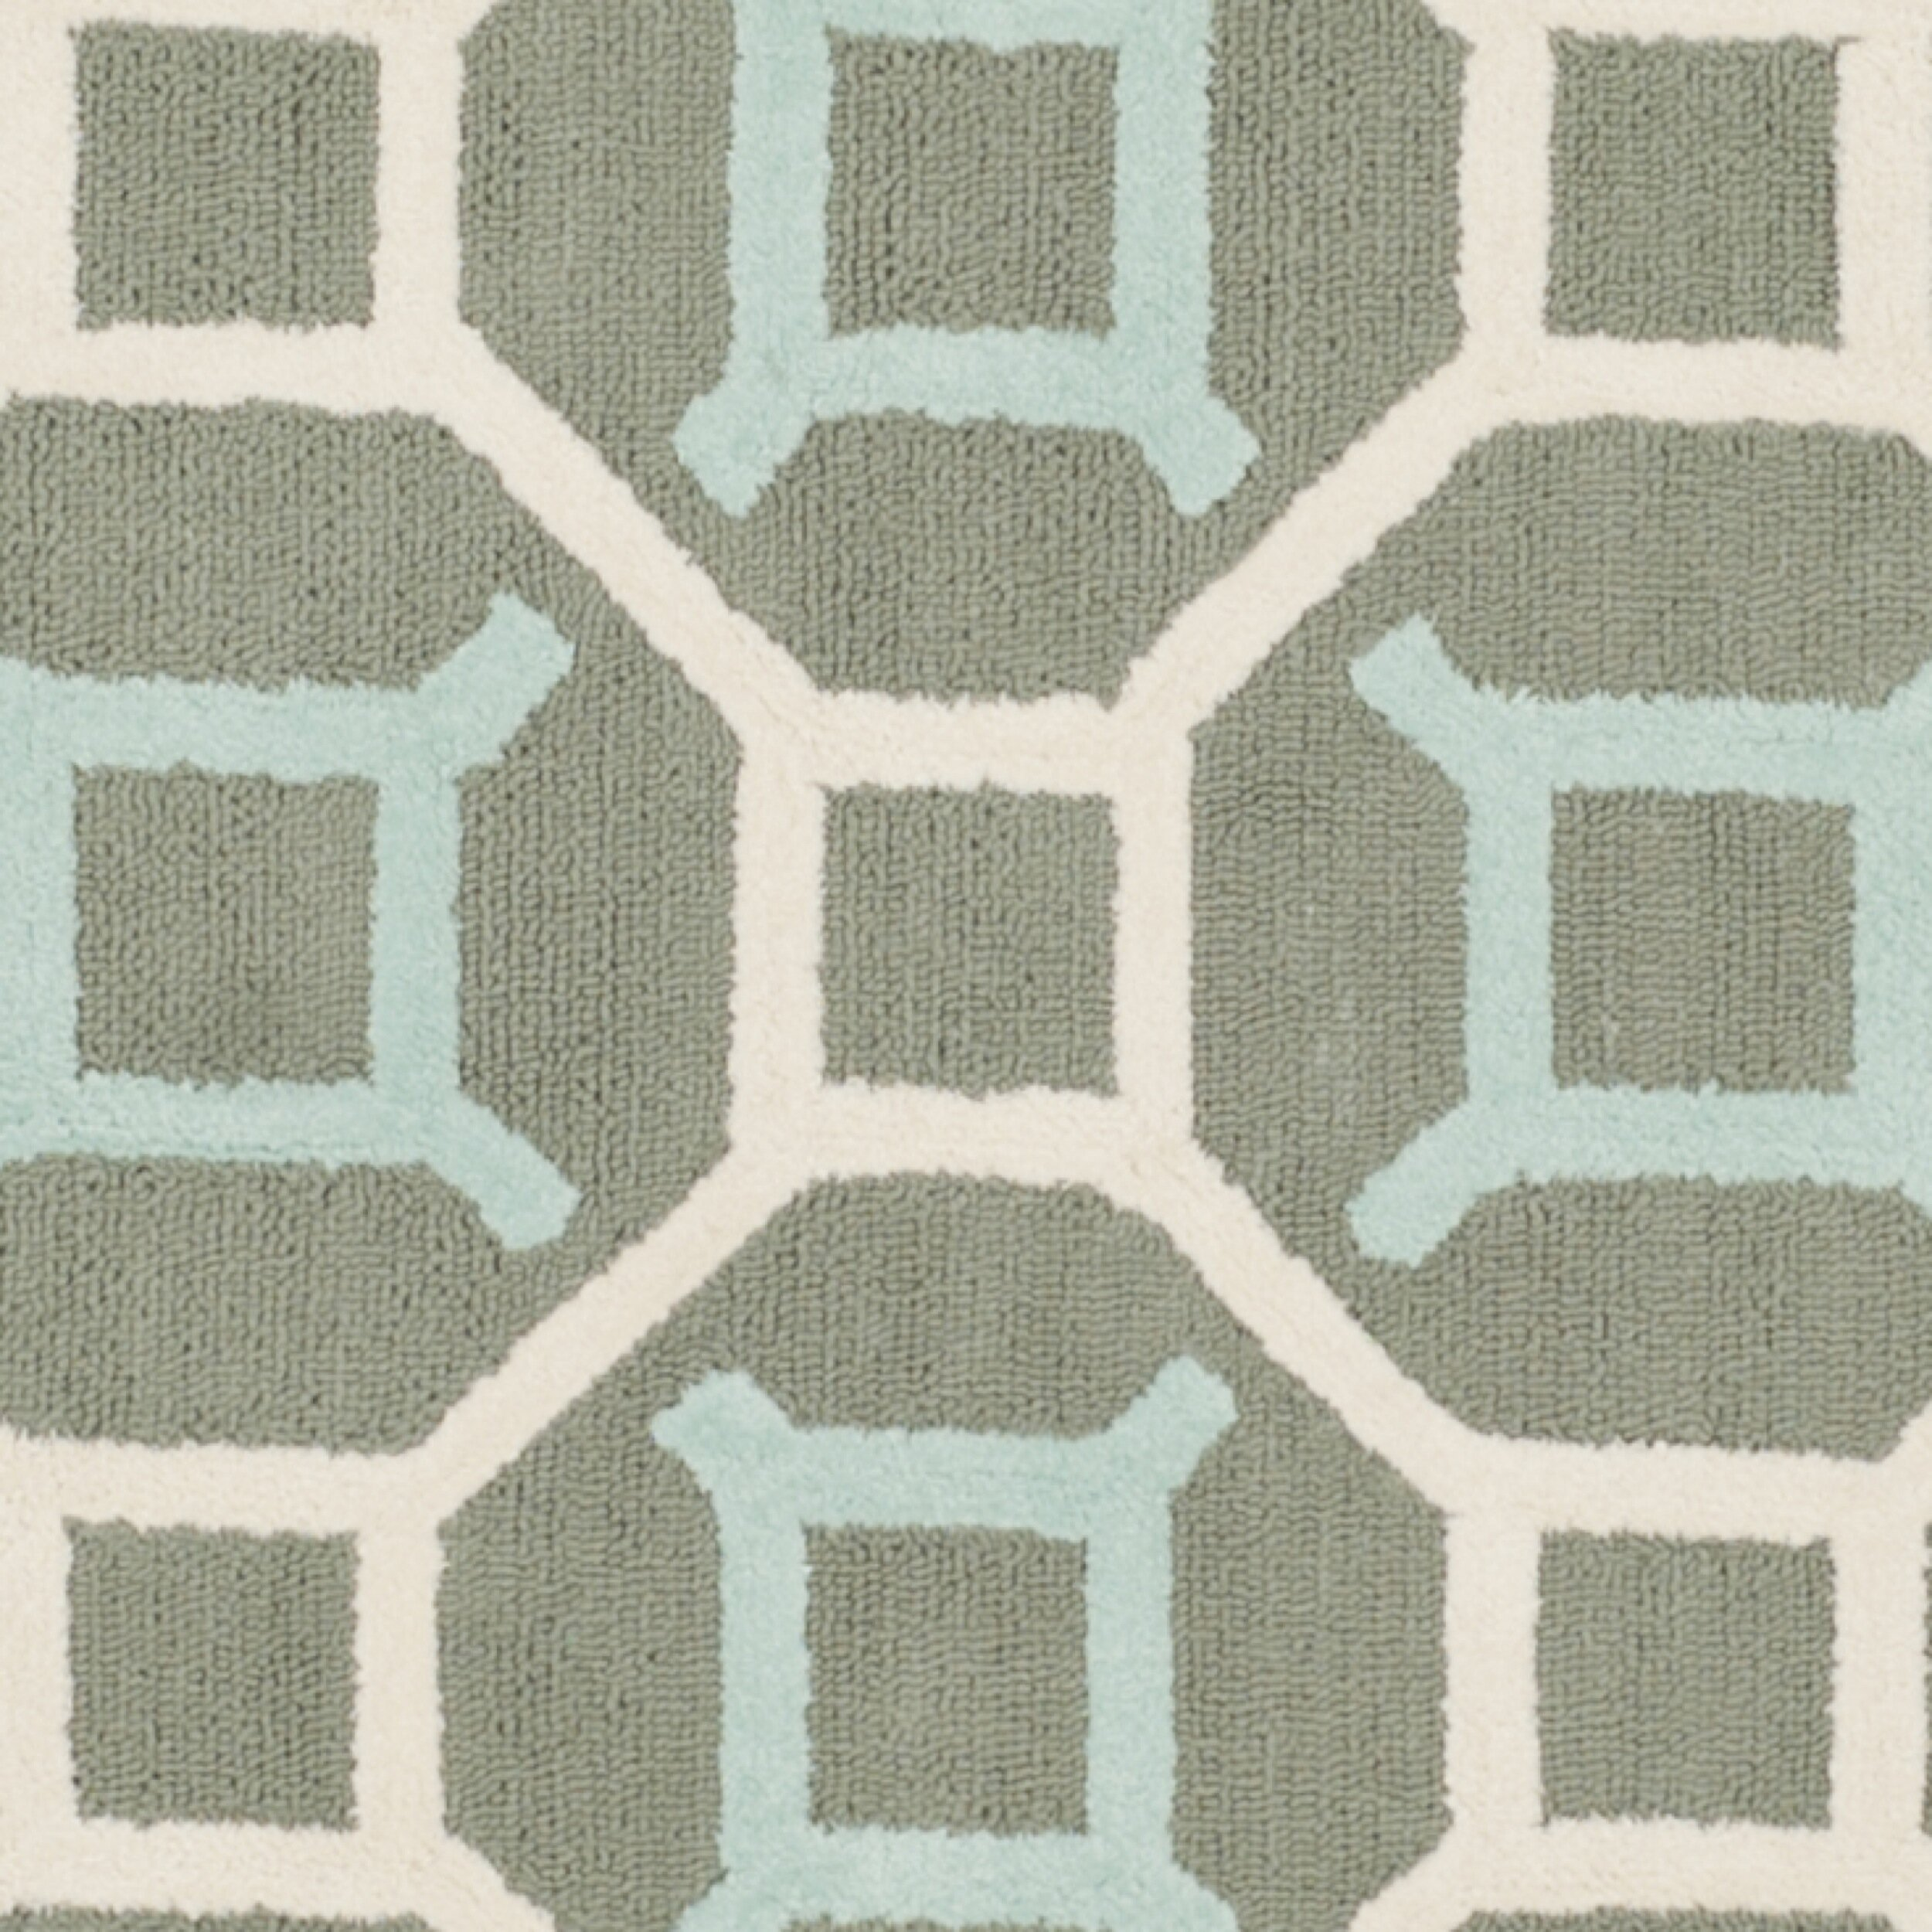 safavieh newport aquamarinewhite area rug cheerful home office rug wayfair safavieh